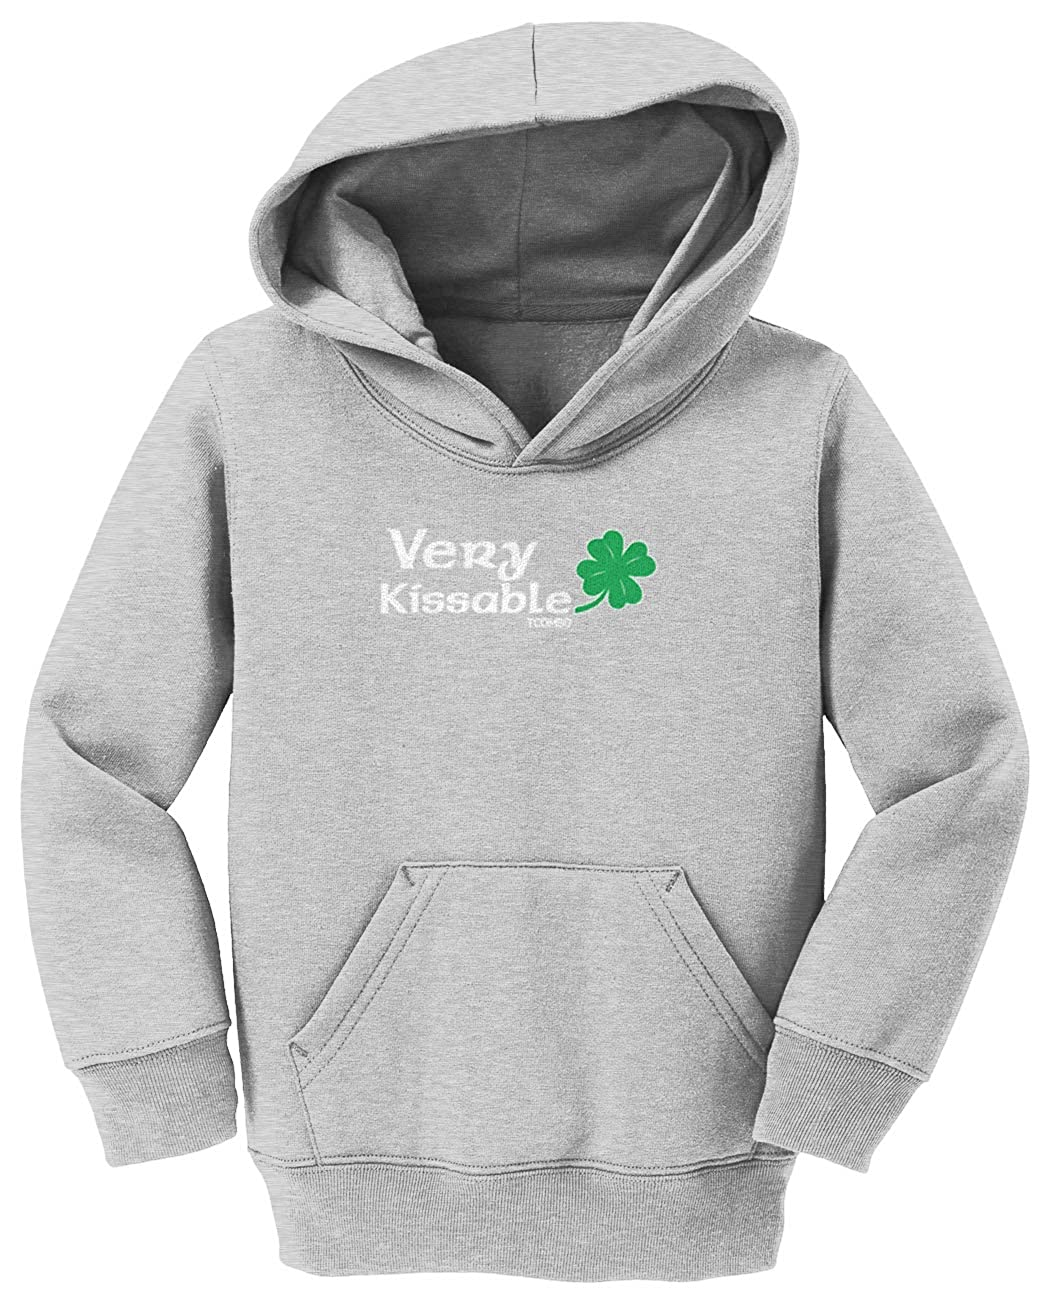 Four Leaf Clover Toddler//Youth Fleece Hoodie Very Kissable